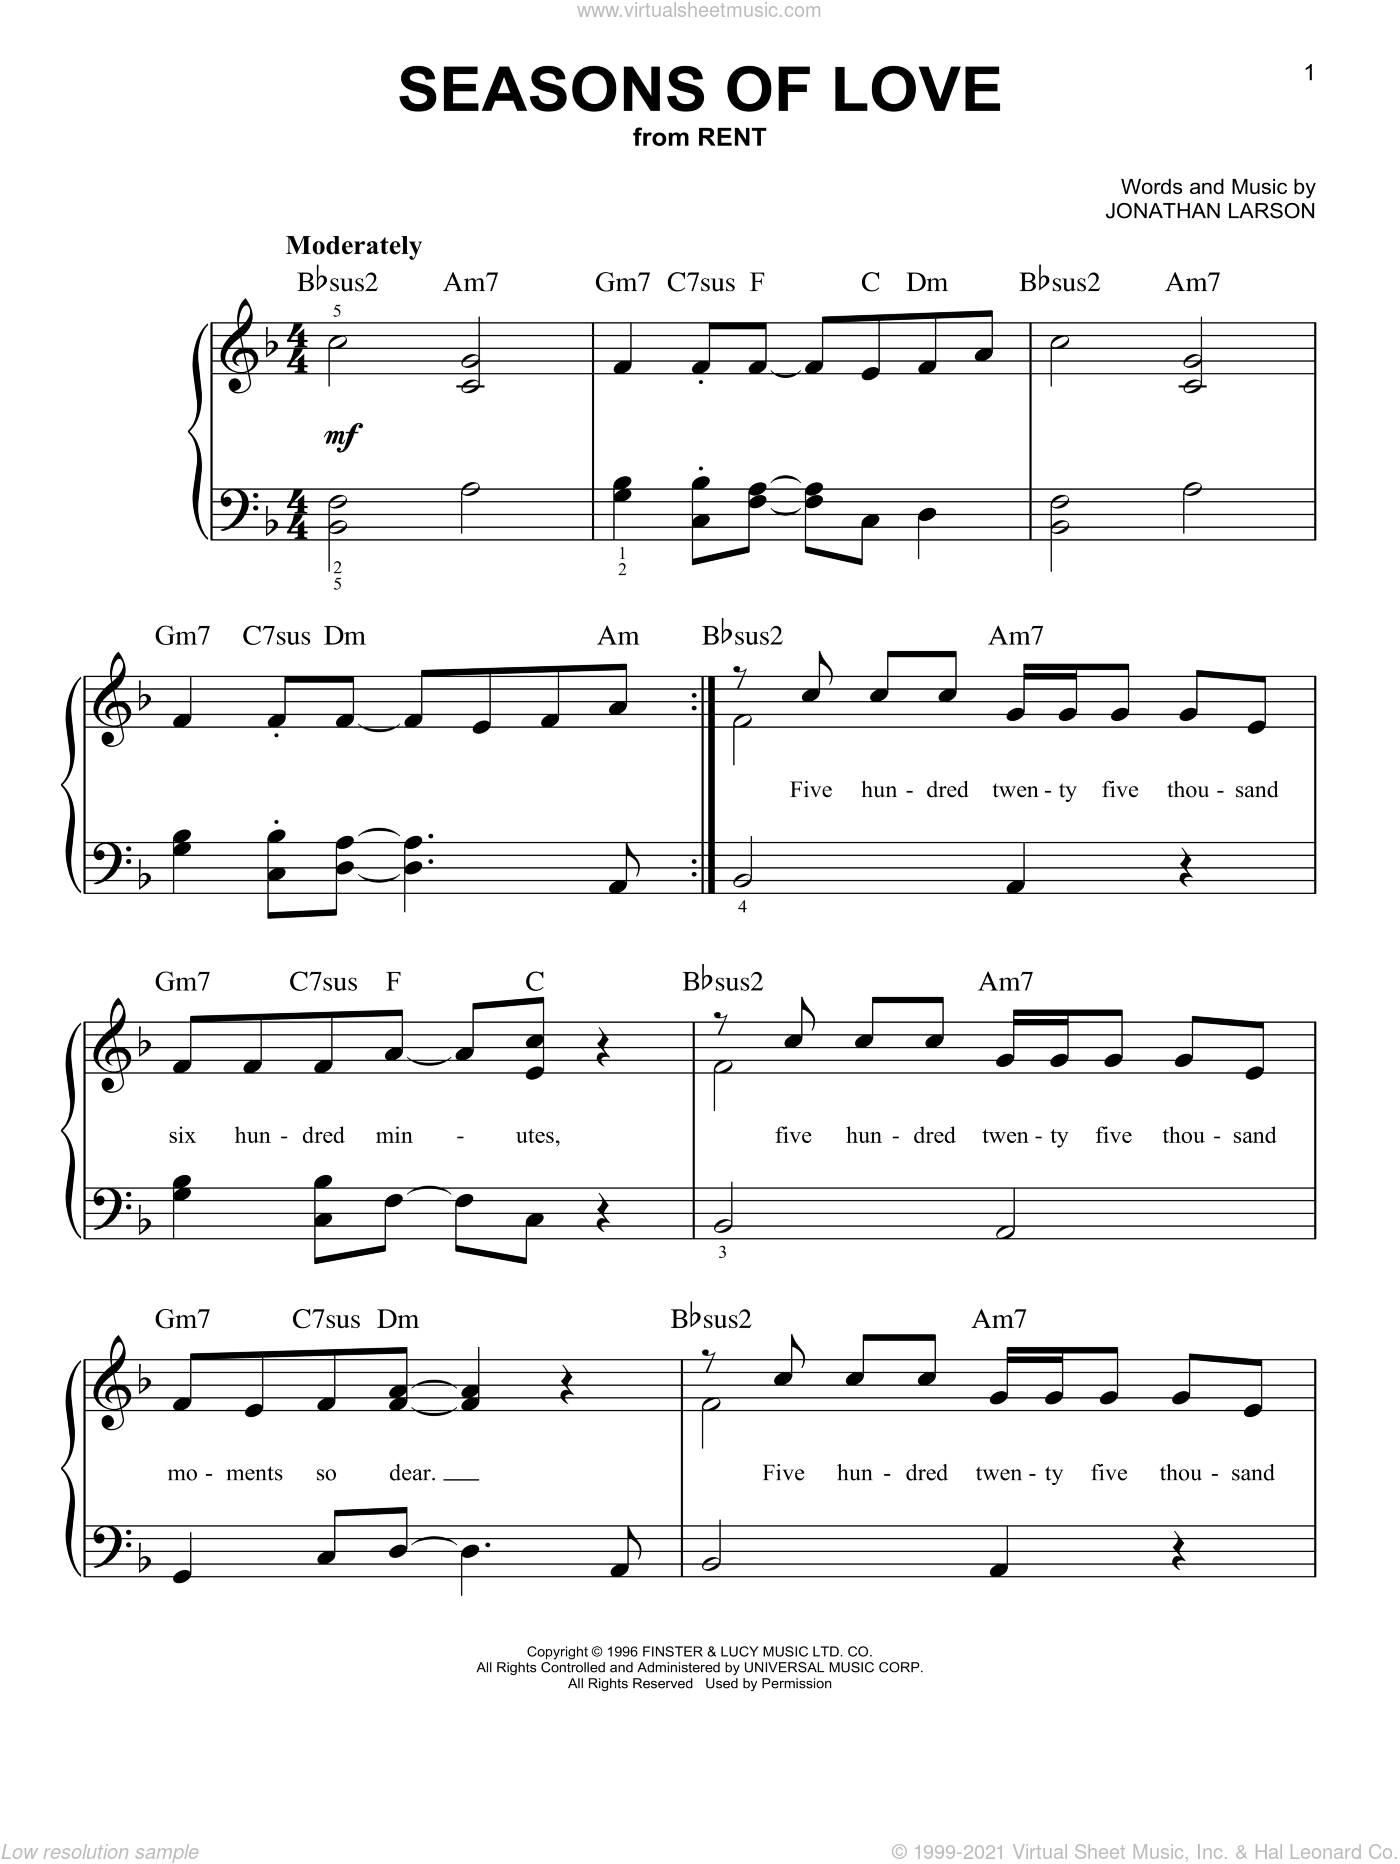 Seasons Of Love sheet music for piano solo by Jonathan Larson. Score Image Preview.